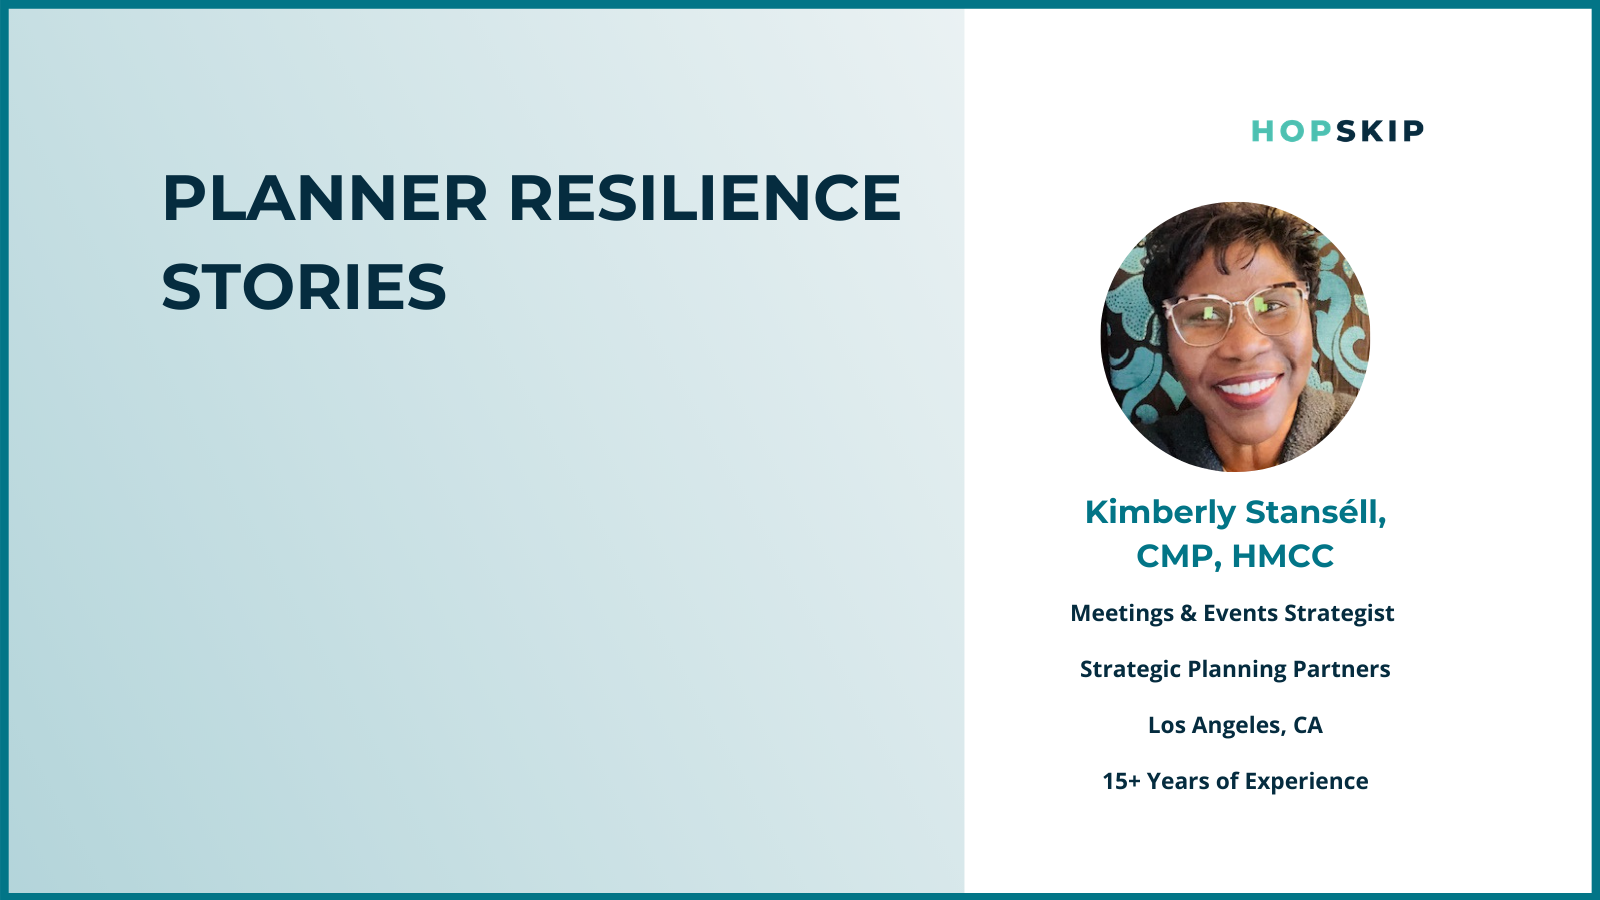 Planner resilience spotlight of Kimberly Stansell of Strategic Planning Partners